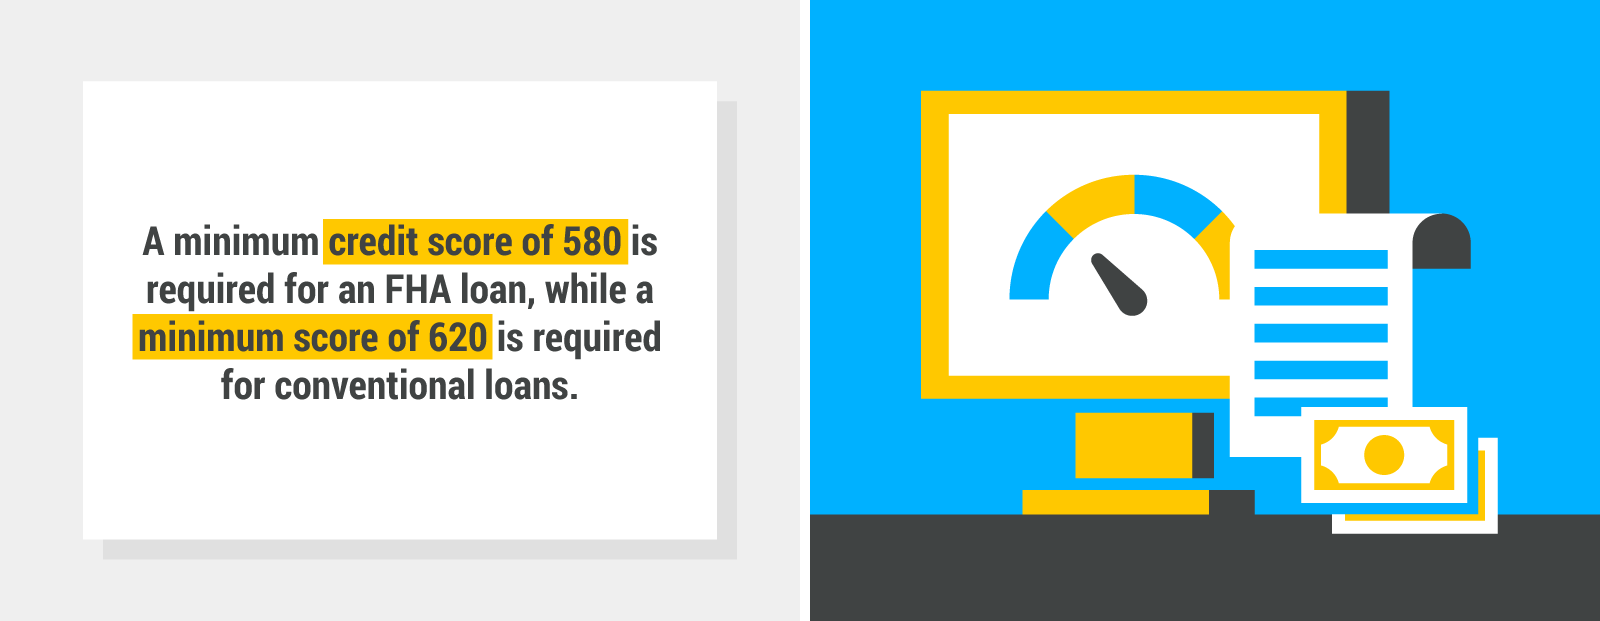 A minimum credit score of 580 is required for an FHA loan while a credit score of 620 is required for conventional loans